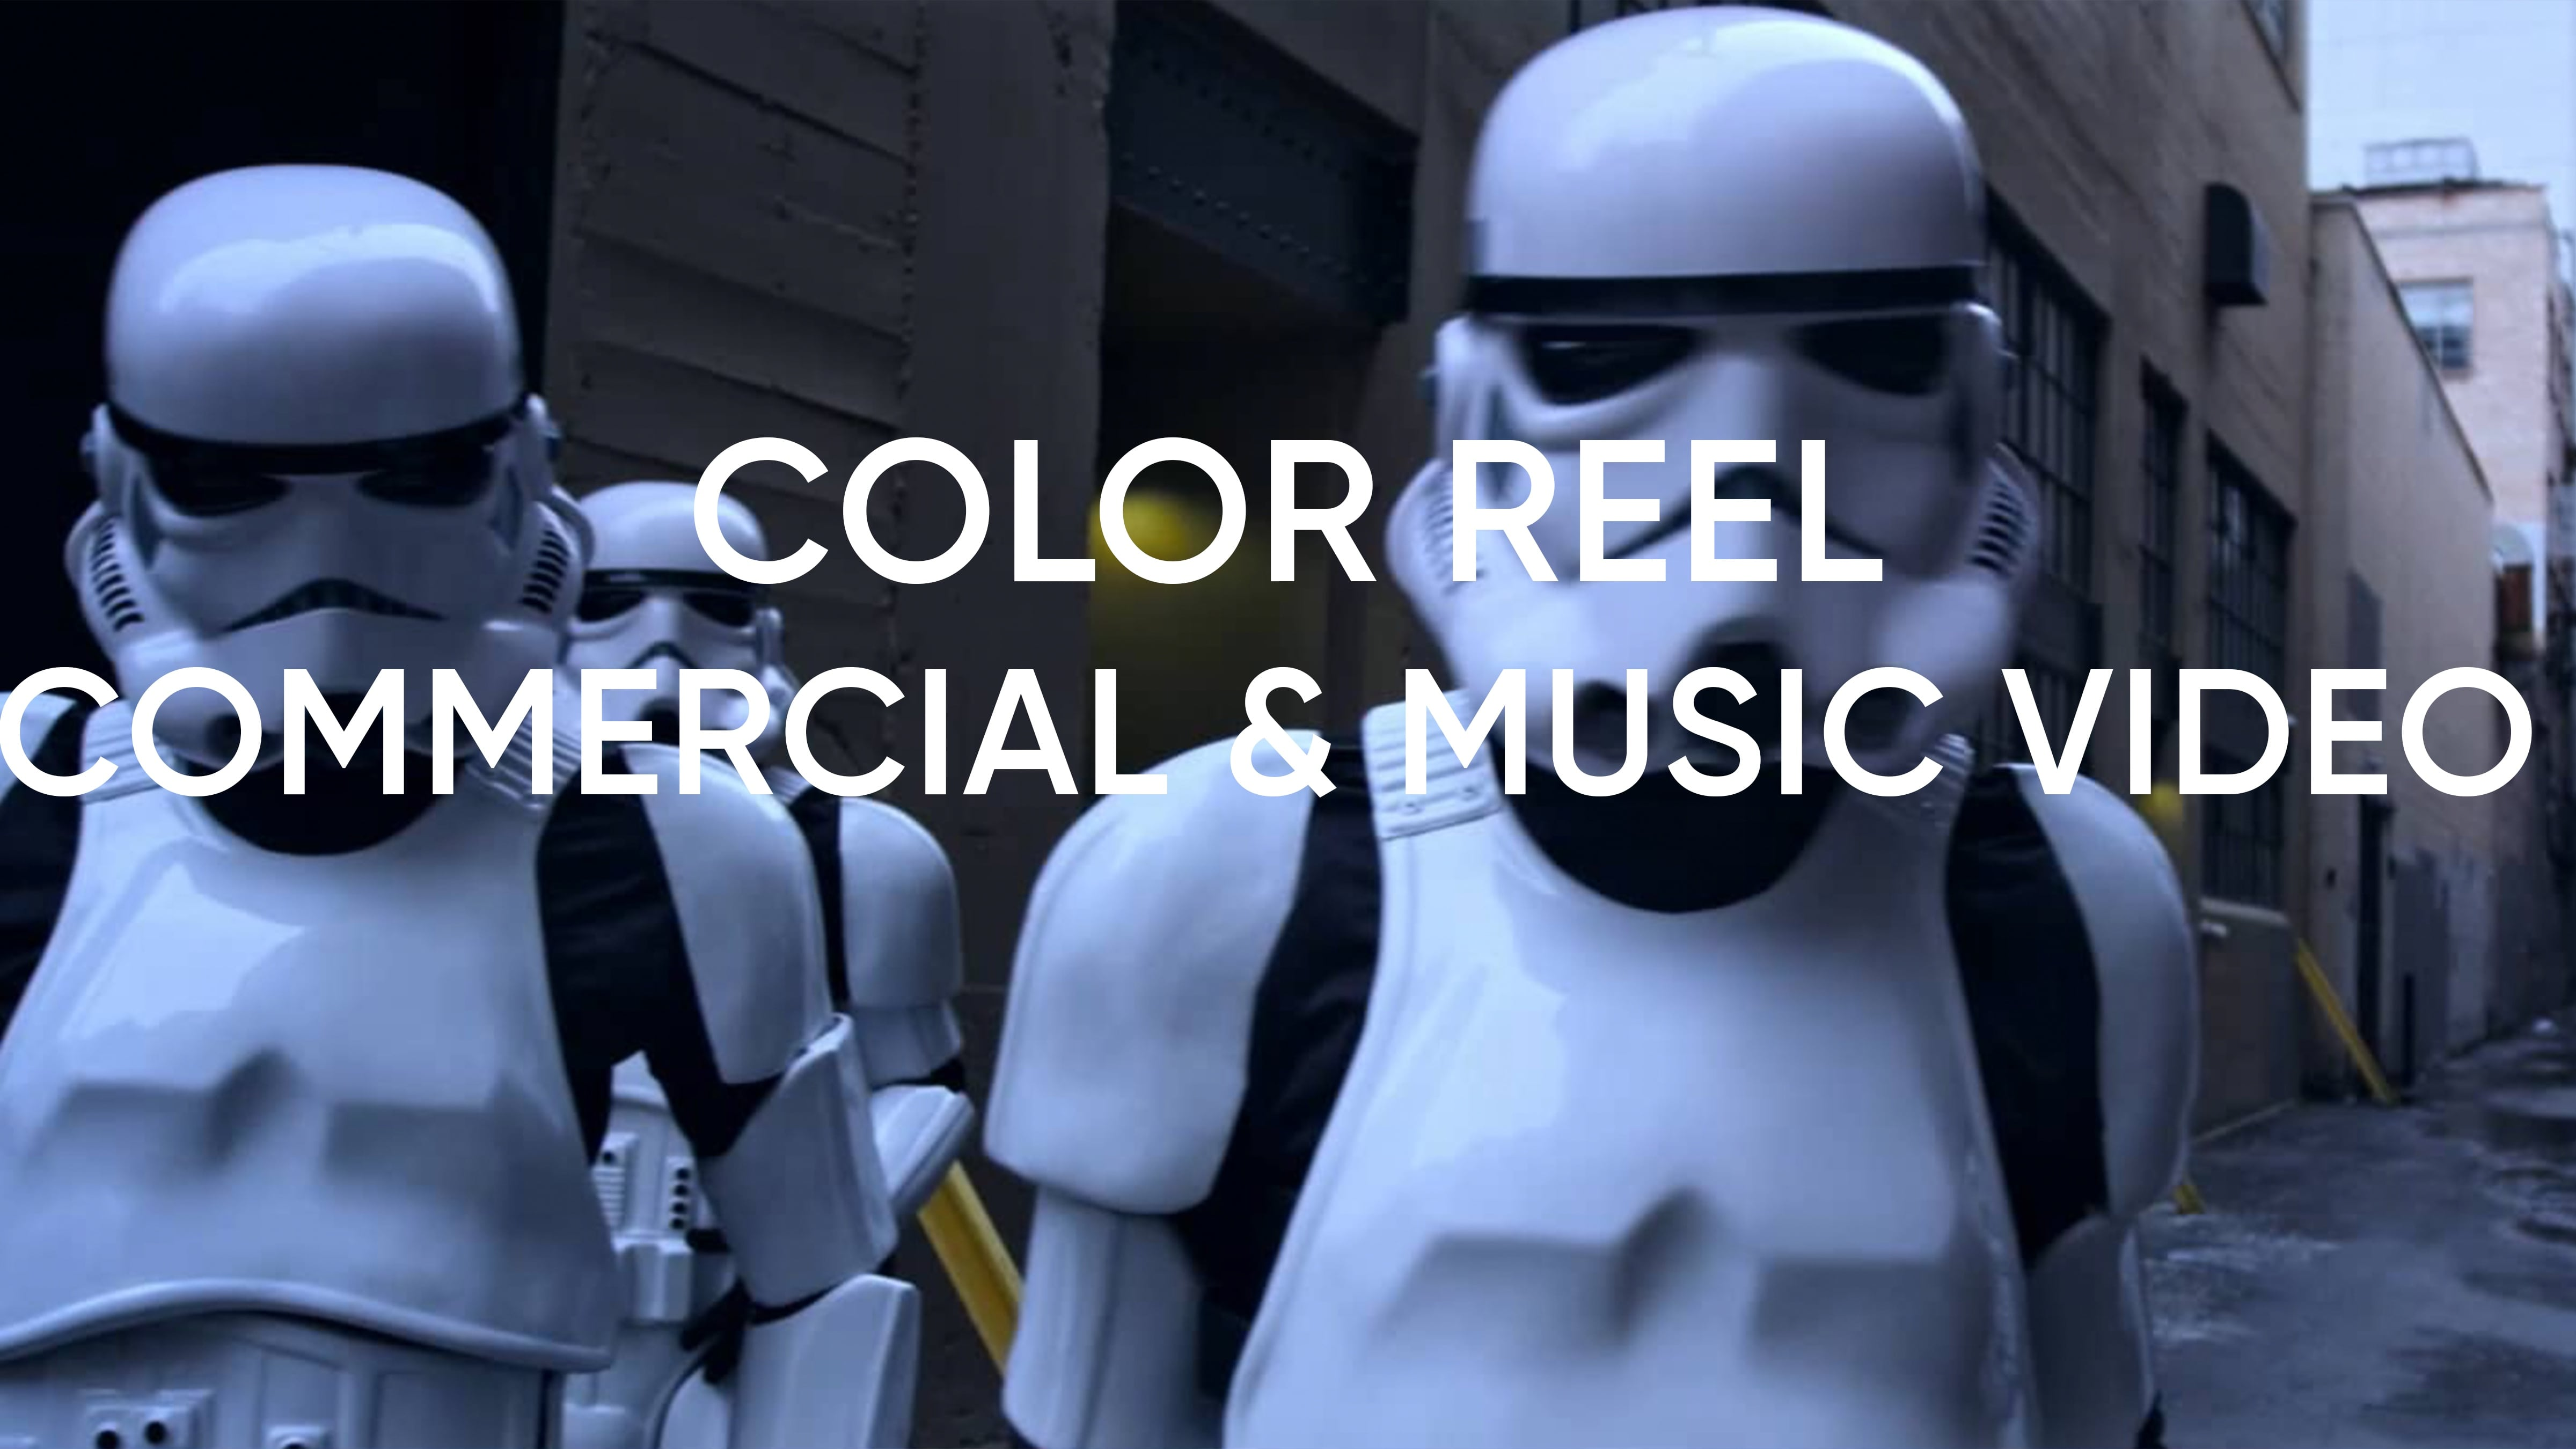 Commercial and Music Video Color Reel. Picture of Storm Troopers